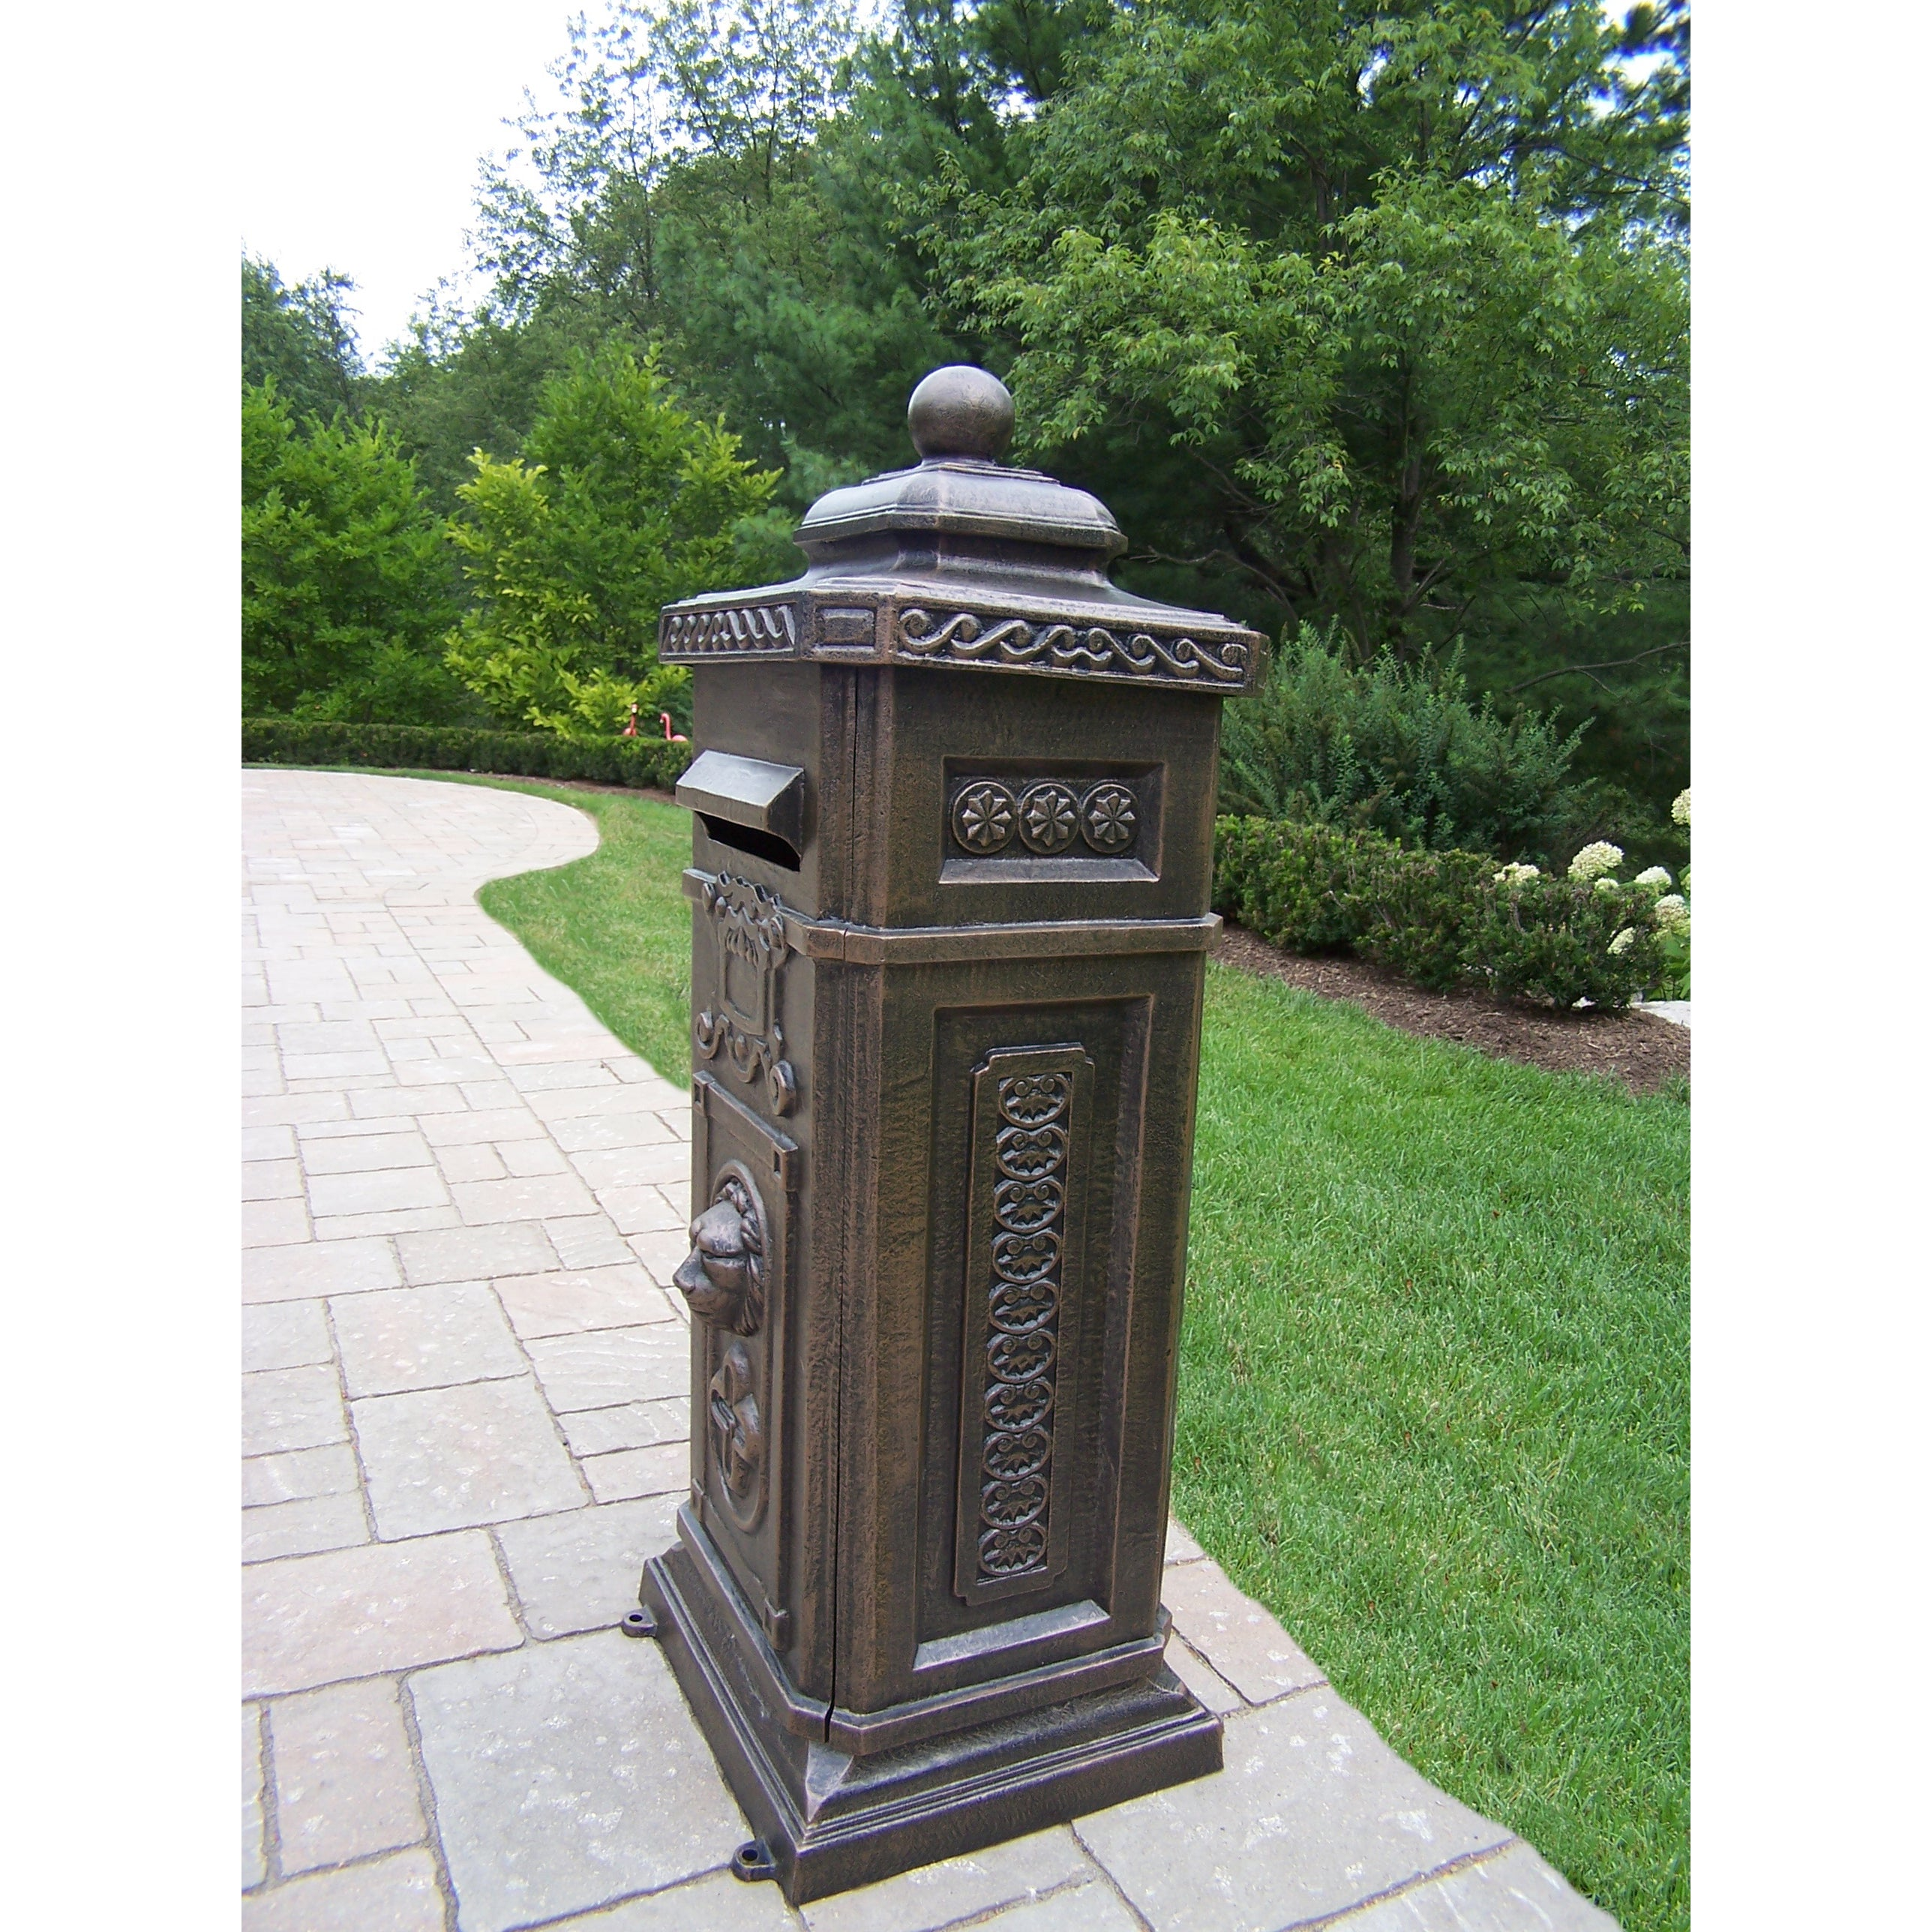 walt sale the candle day service victimassist image world mailboxes antique pedestal for and inside victorian mail resort disney usps mailbox every brass org